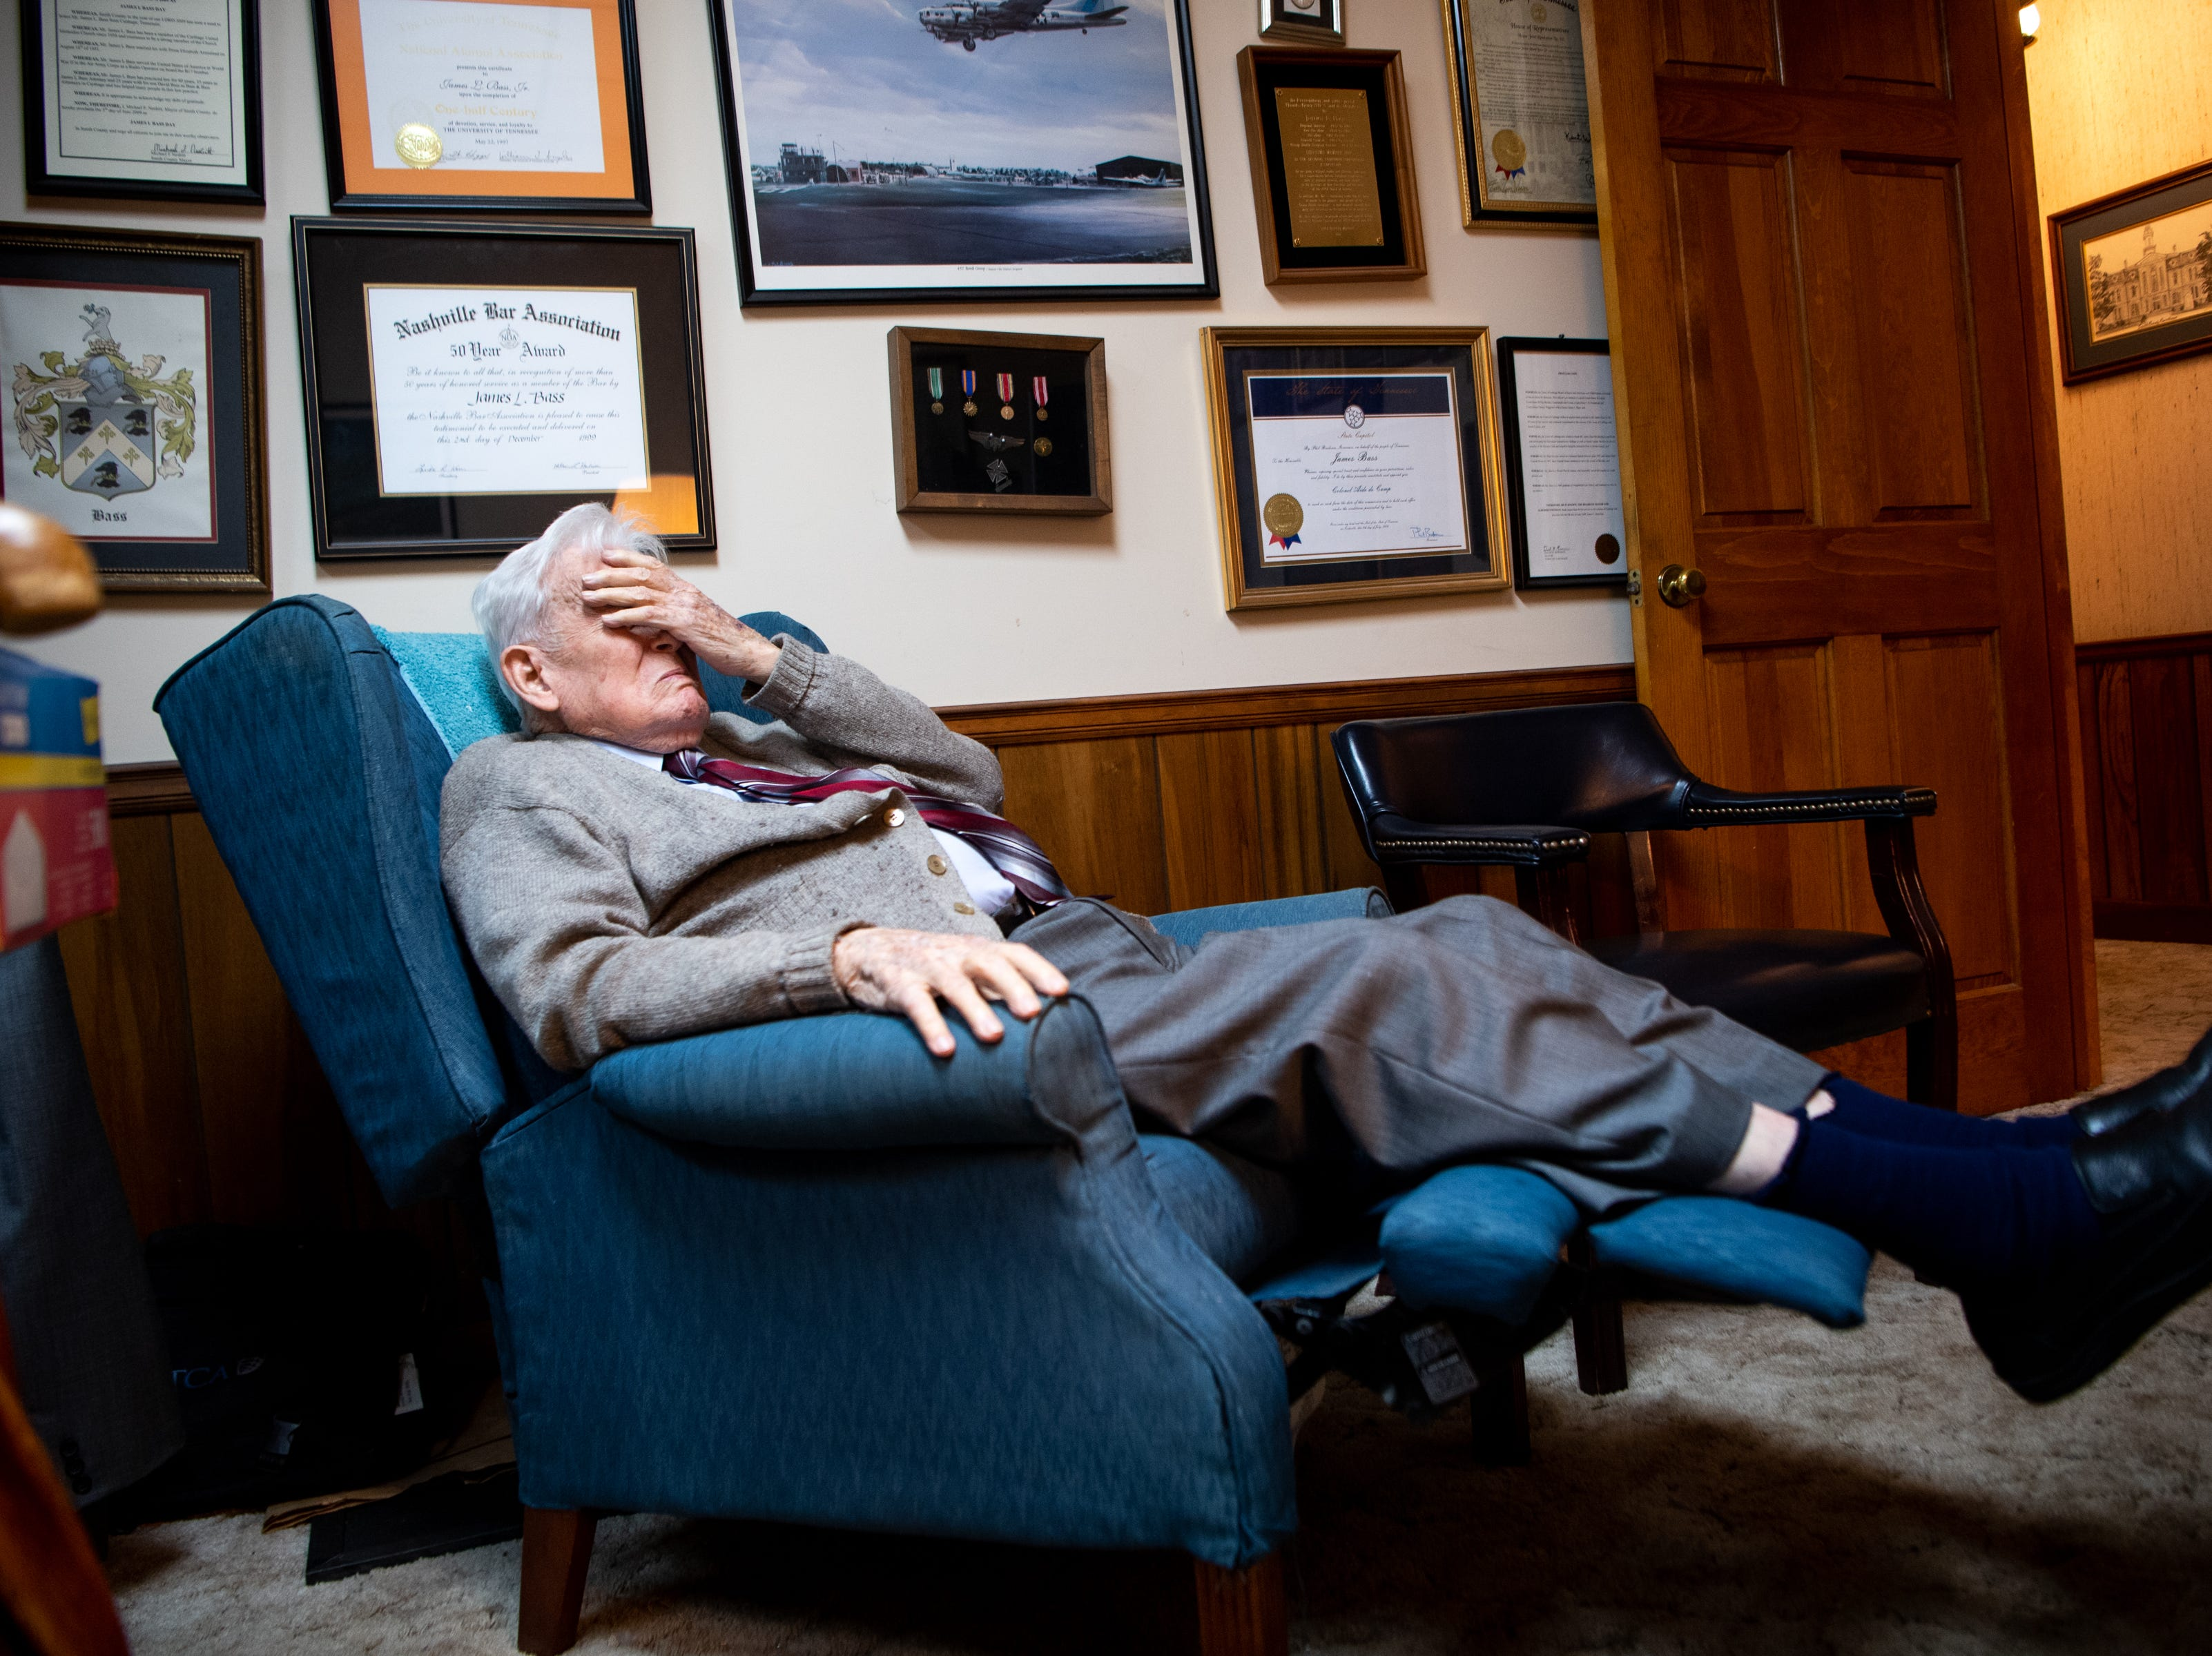 James L. Bass, 97, covers his eyes while preparing to take his daily nap at Bass & Bass Attorneys At Law Friday, March 29, 2019, in Carthage, Tenn. Bass still works five days a week at the family law firm after starting there 70 years ago. Bass served in World War II, went back to school to pursue a law degree and graduated Vanderbilt University School of Law in 1949.